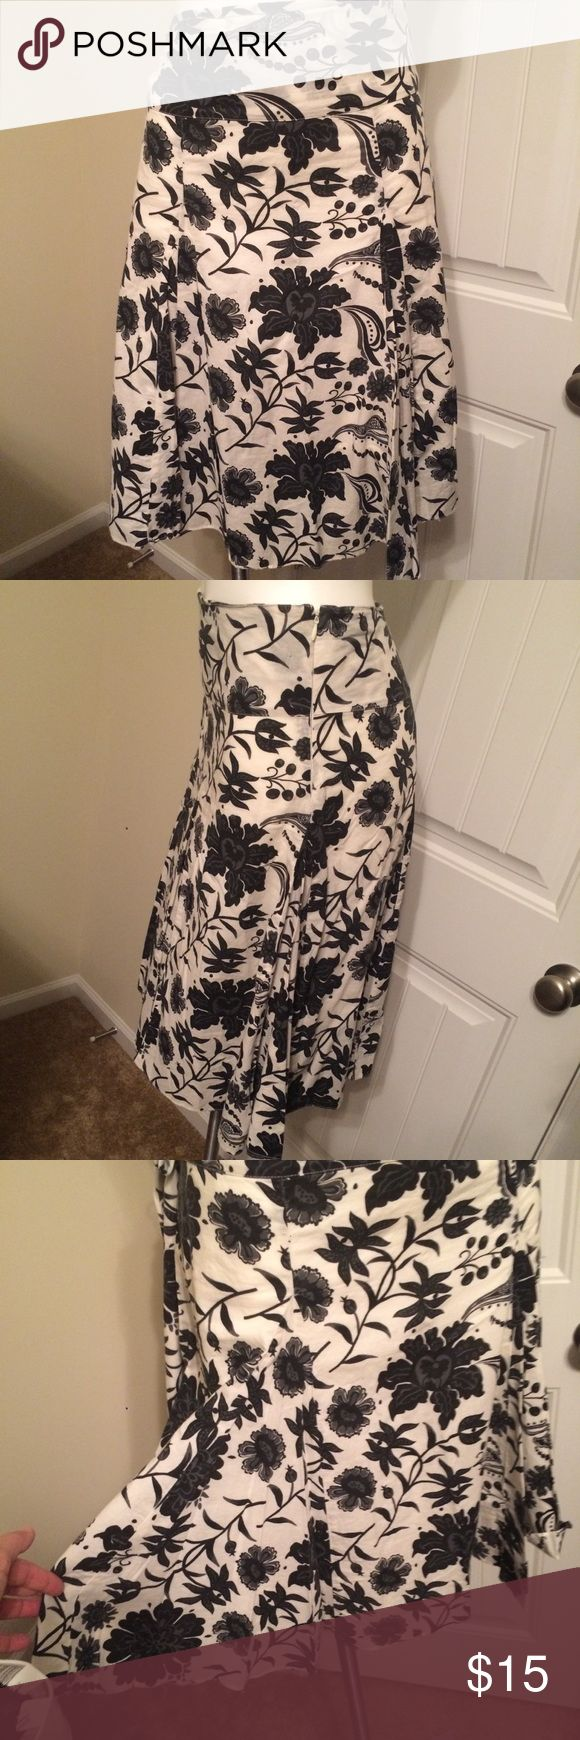 Floral, godet/pleat skirt One of my favorites!!! I can't wear it anymore.  Gently worn & laundered. Still has lots of life left in her!!!  It's a cotton (looks like quality linen), very lightweight & summery. Has a privacy lining underneath. Wide waste band can be worn high or low. Side zip.  Cream base with big black flowers. Skirts A-Line or Full